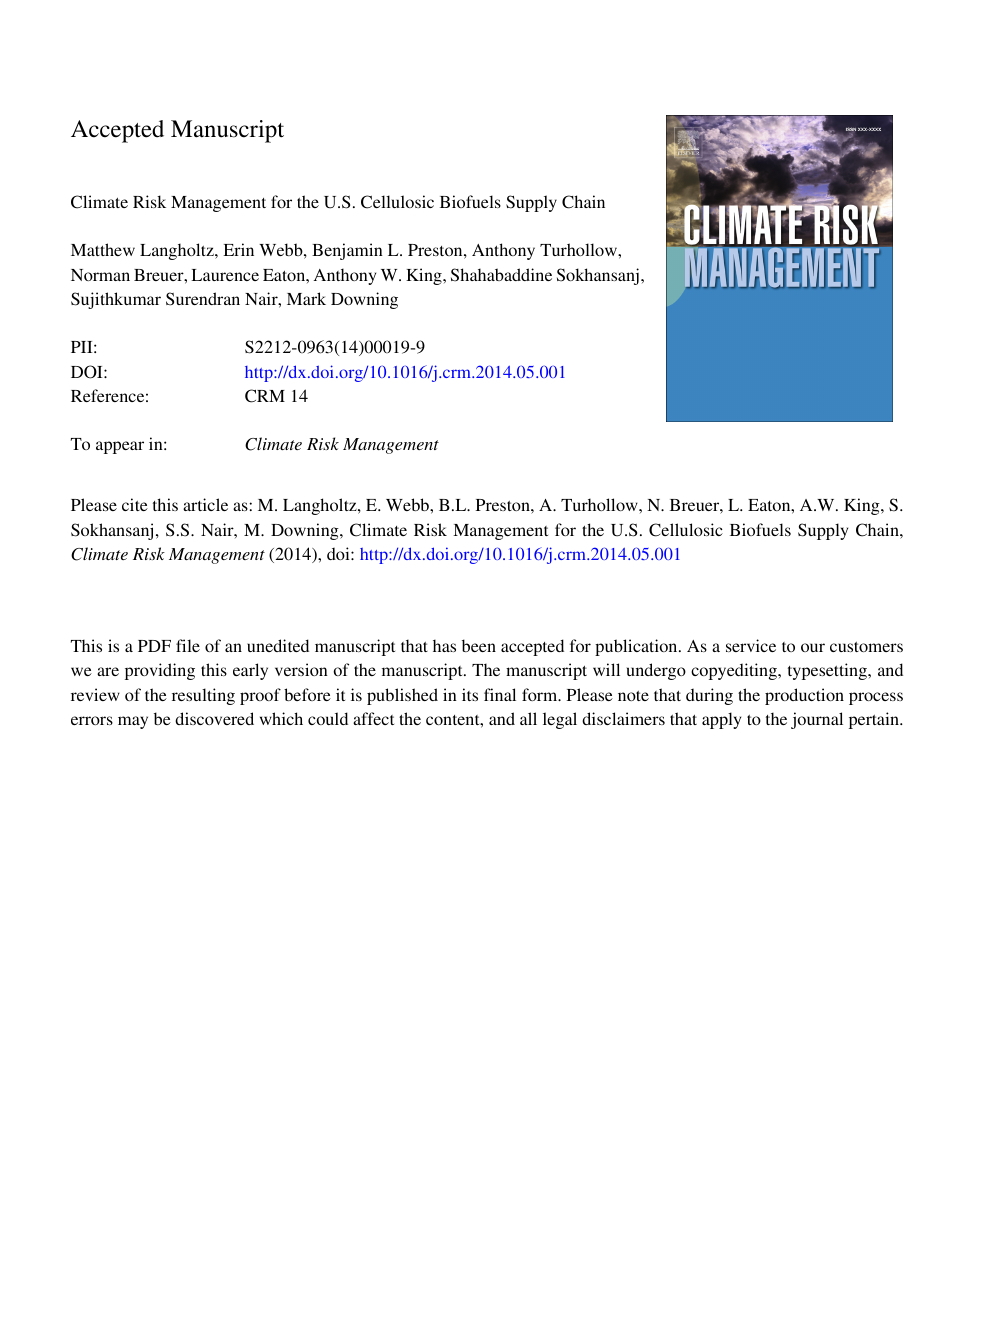 Climate Risk Management For The U.s. Cellulosic Biofuels within J Hampton Moore School Calendar